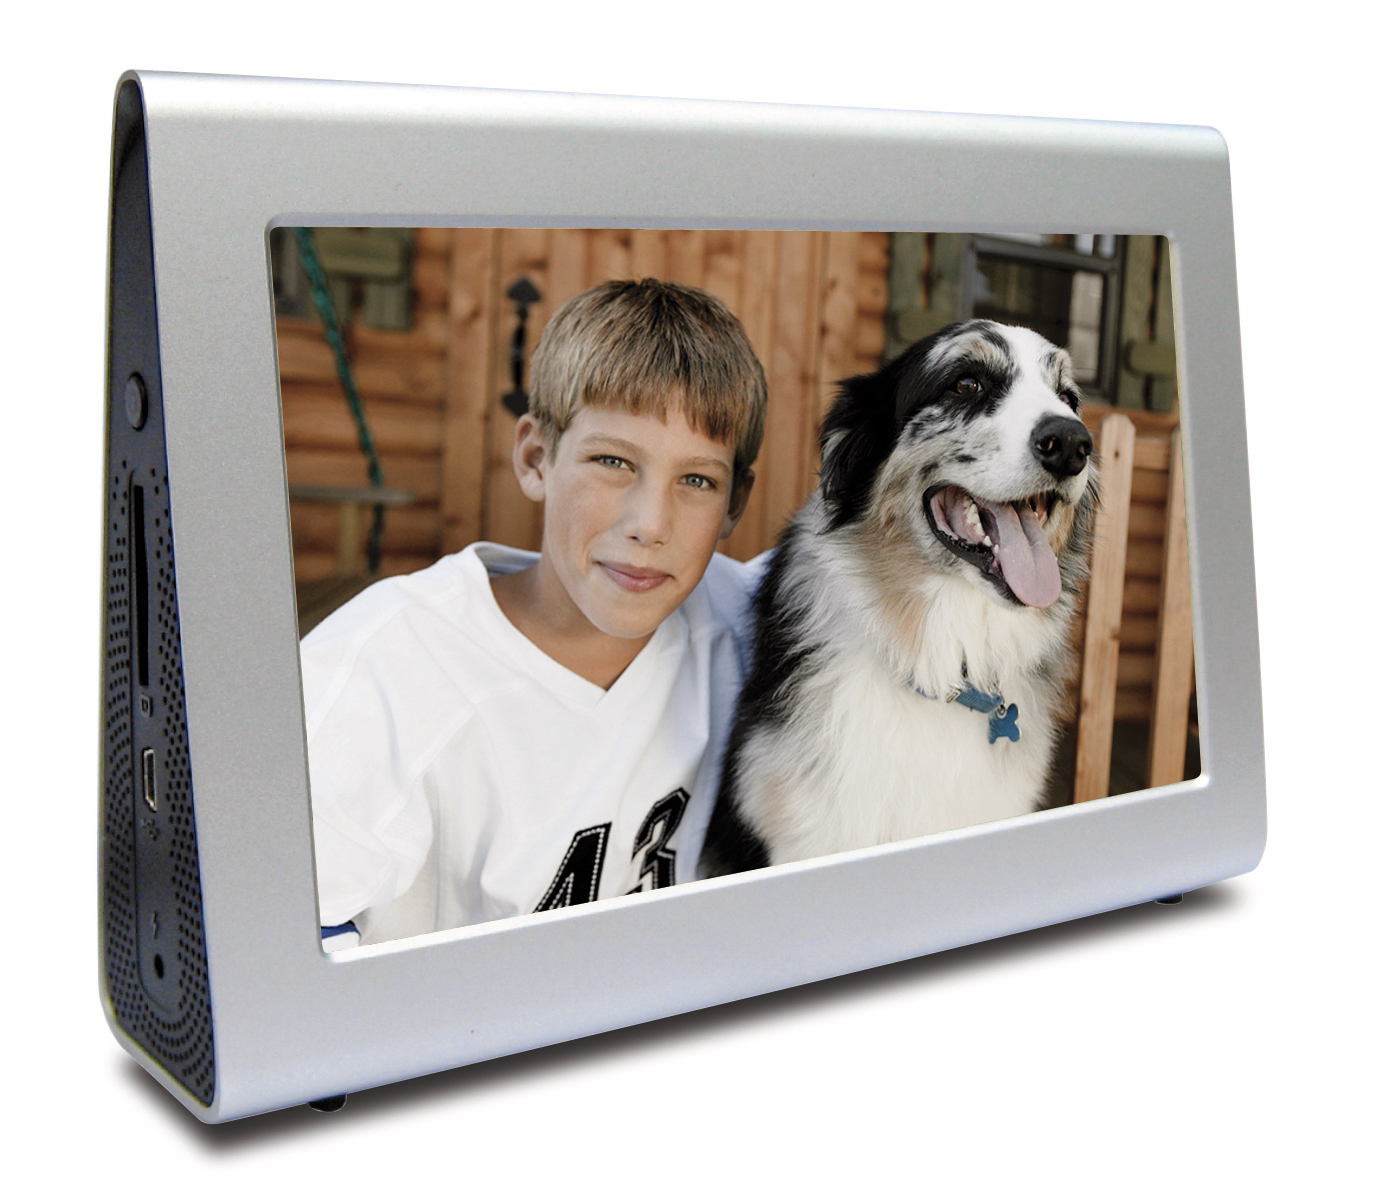 Giinii 8 Inch Digital Picture Frame - Picture Frame Ideas